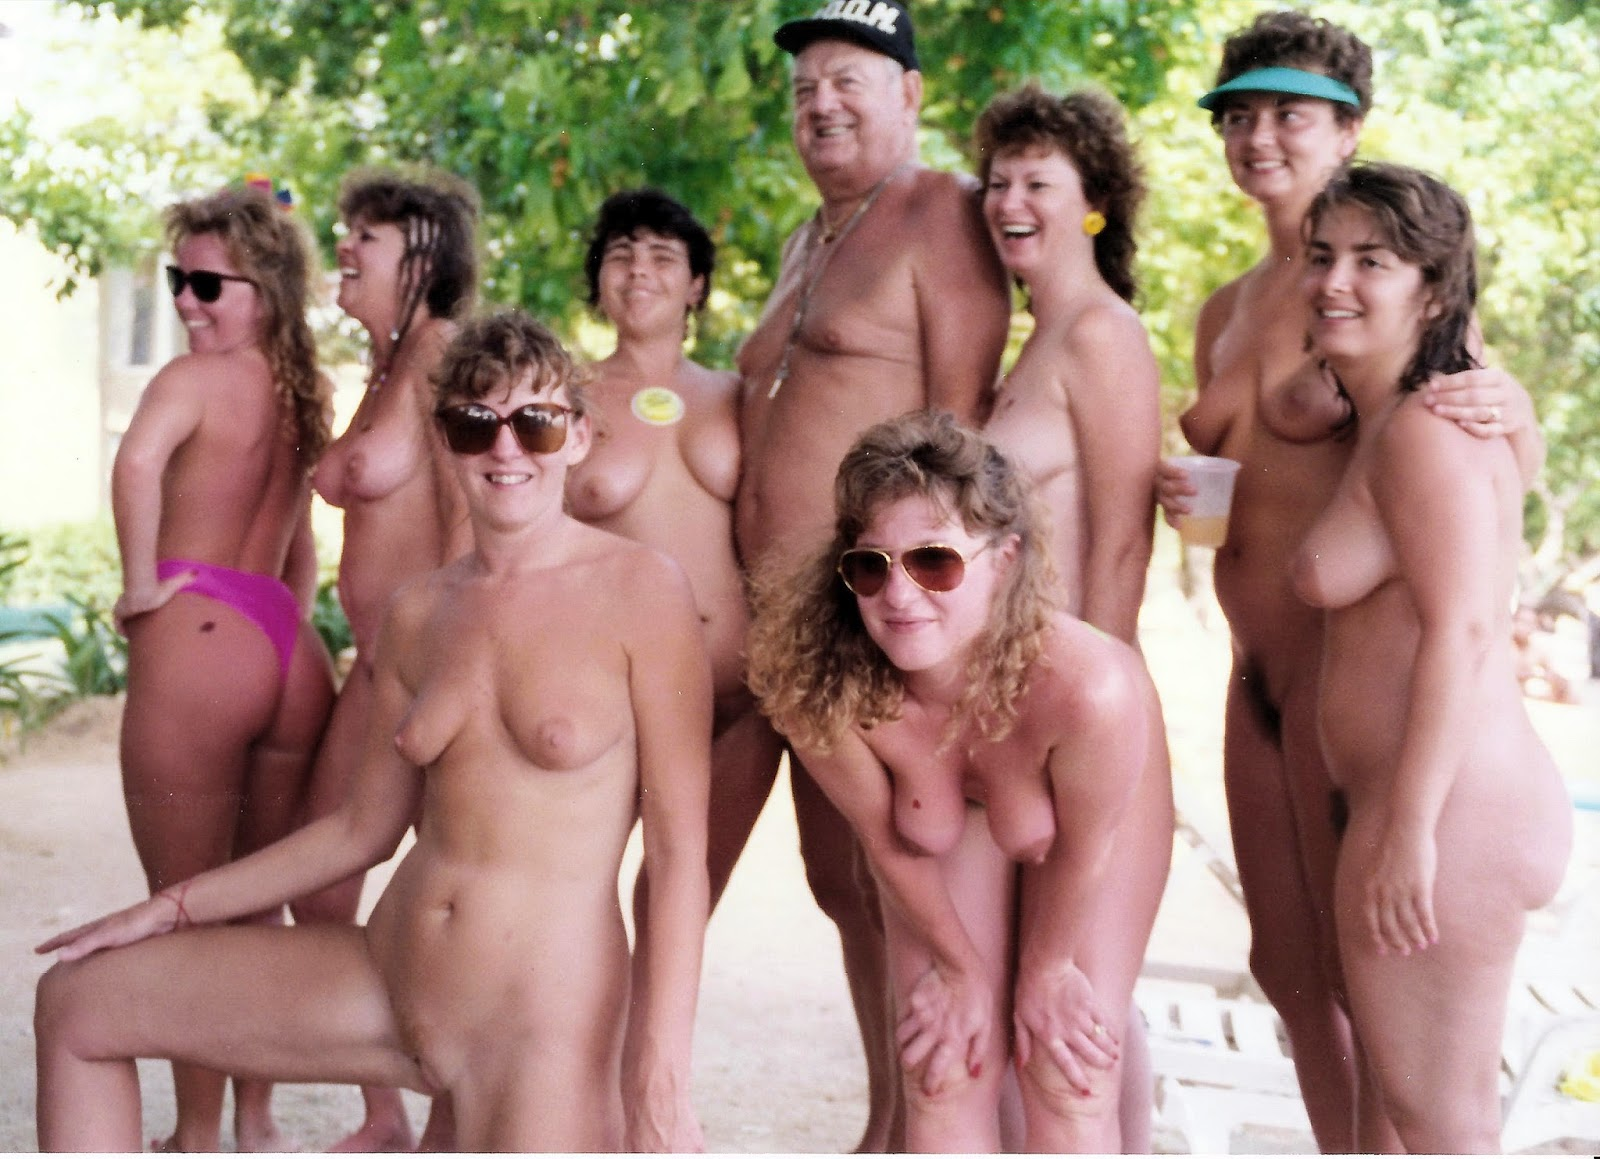 Kiwi Twins Extreme Nude Survival Challenge In African Wilderness